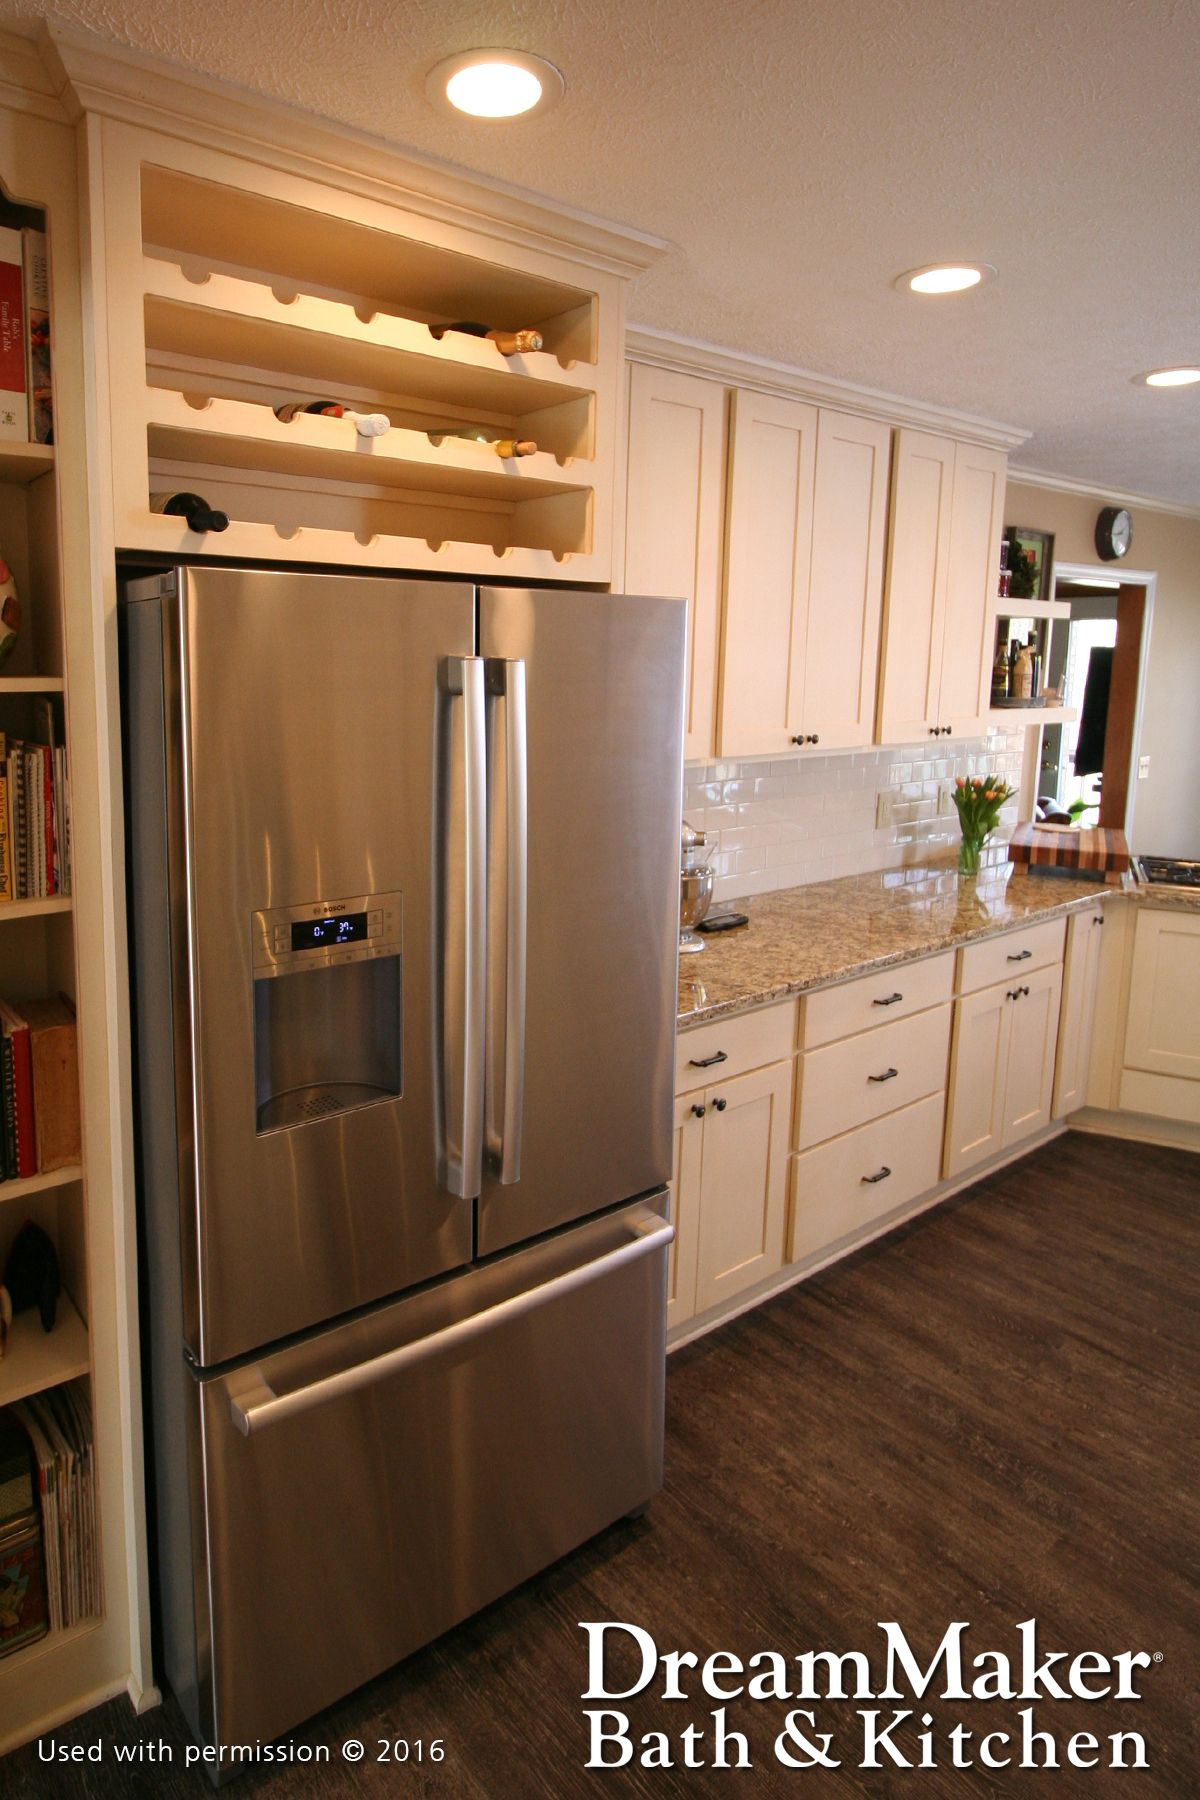 Placing A Wine Rack Above The Refrigerator Is A Great Idea When Trying To Figure Out What You Will Do With That Kitchen Cabinet Wine Rack Kitchen Home Kitchens